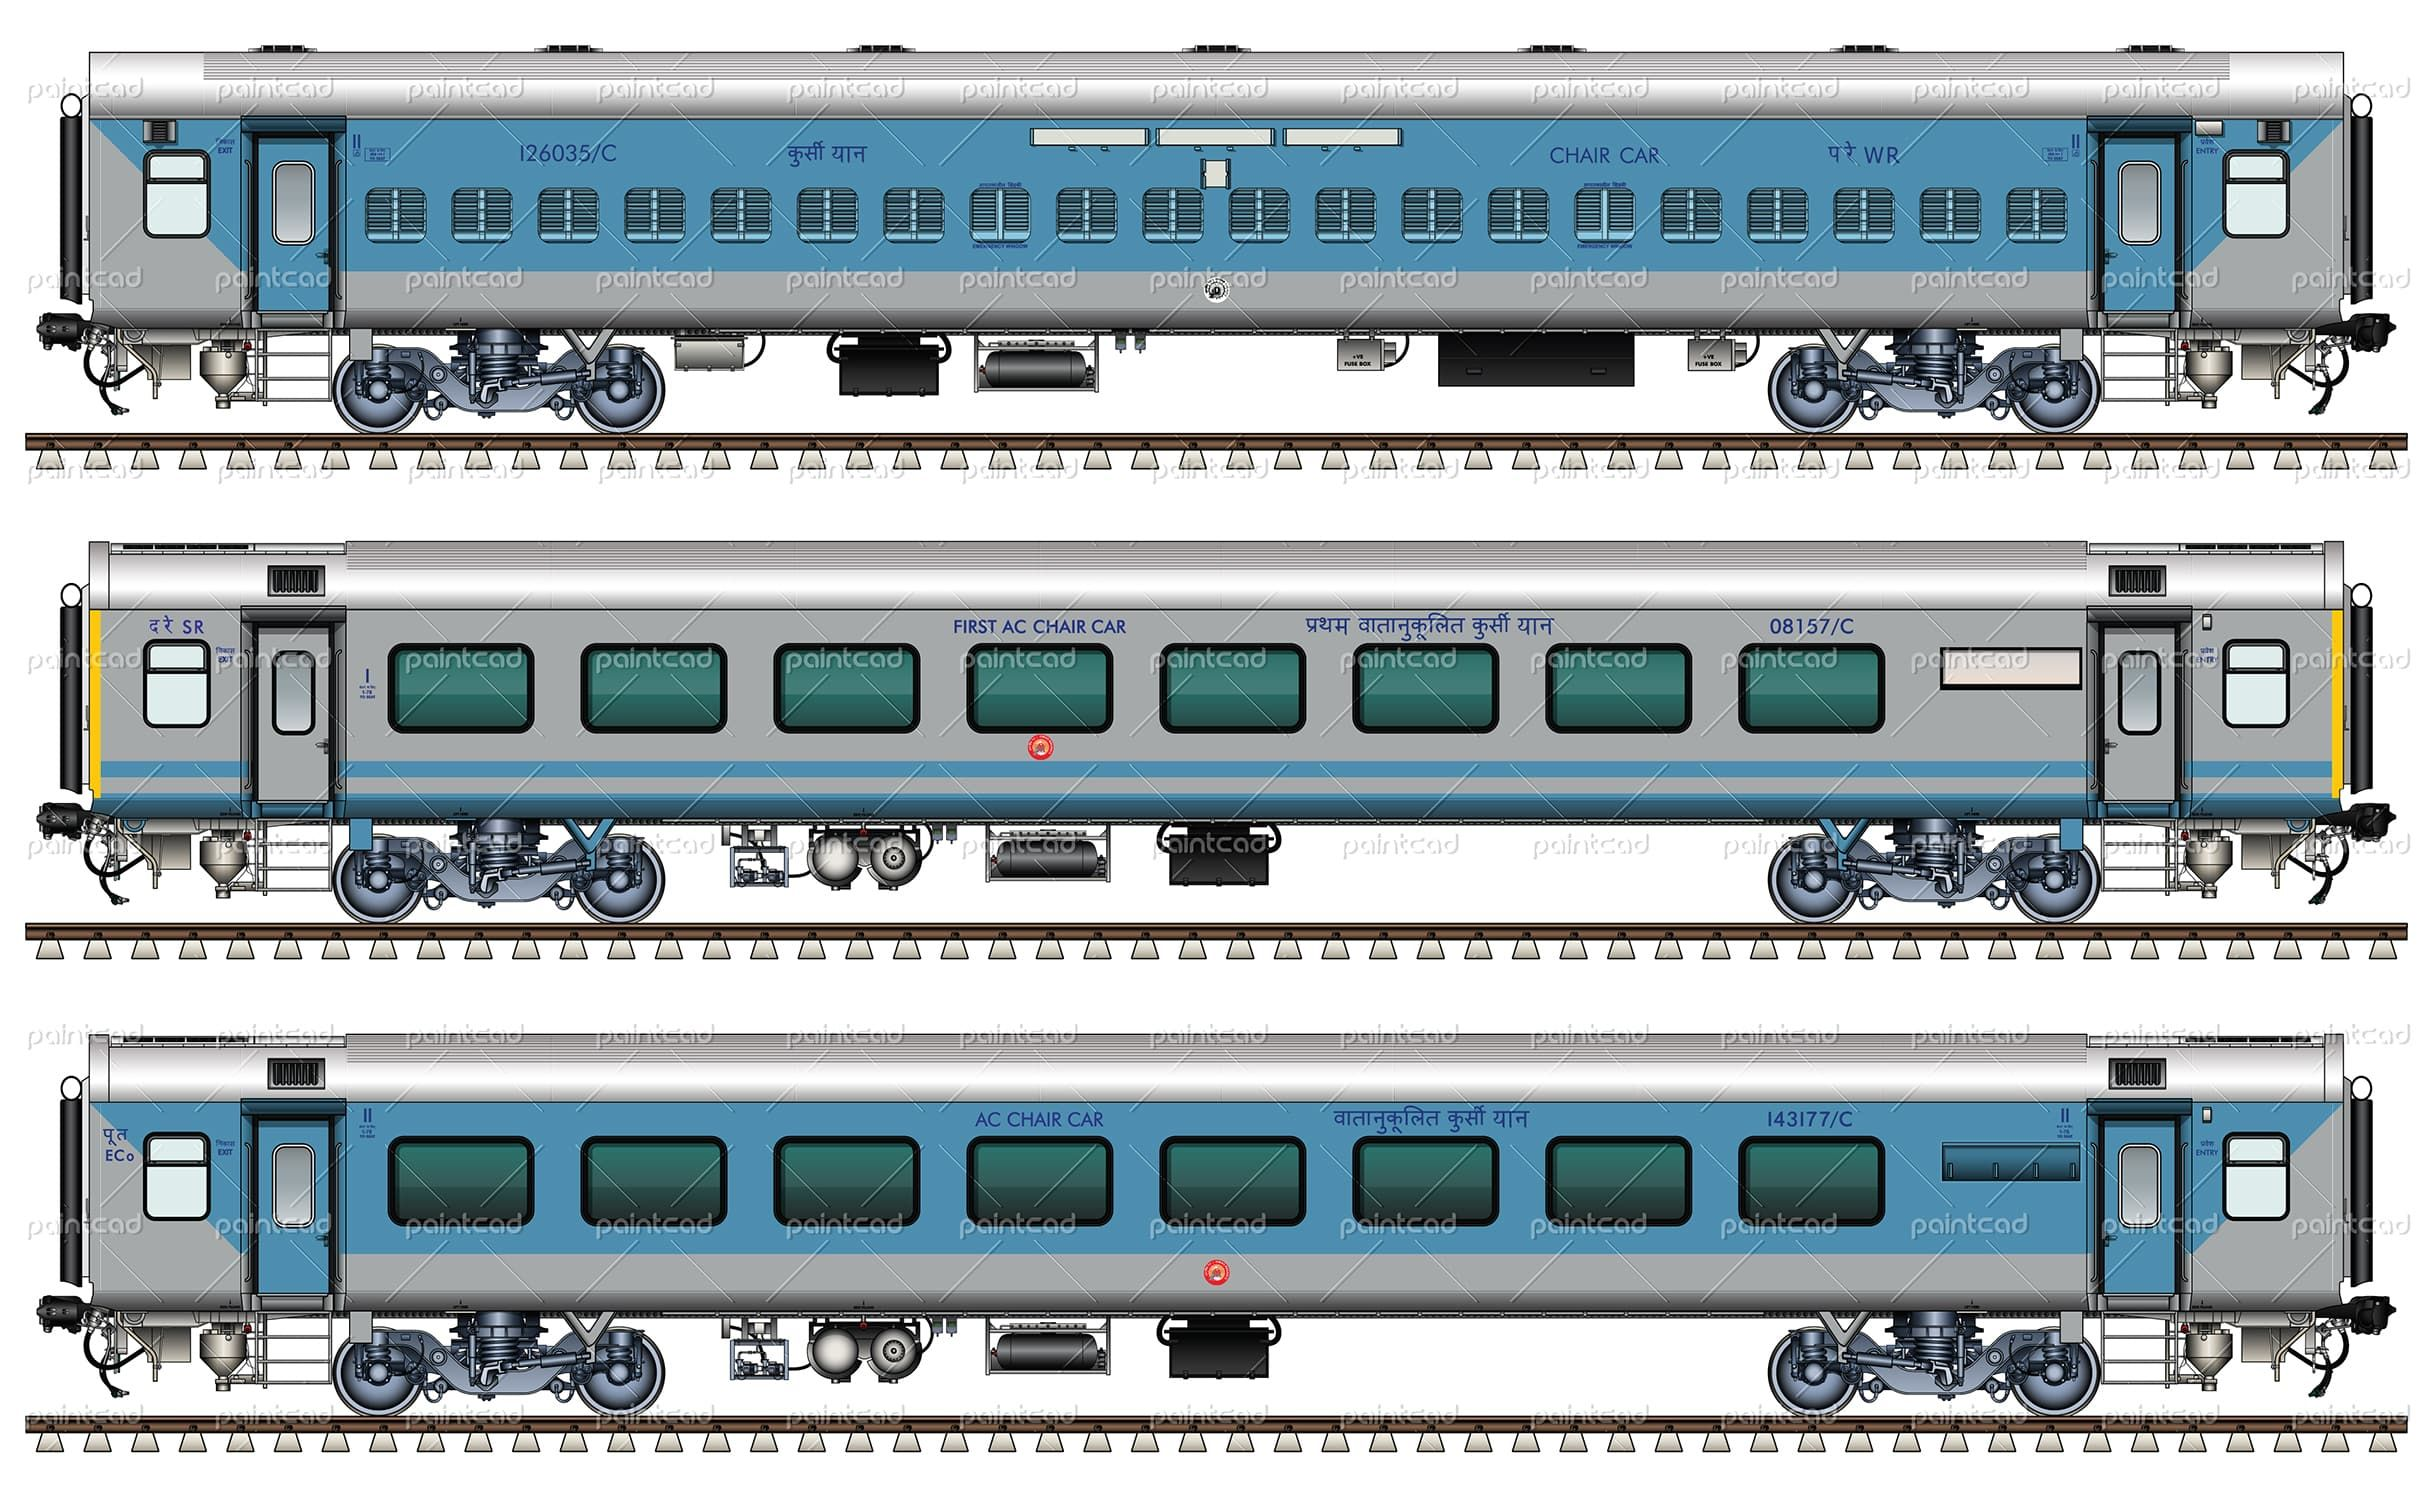 non and ac chair cars 1st and 2nd class by indian railways chemin